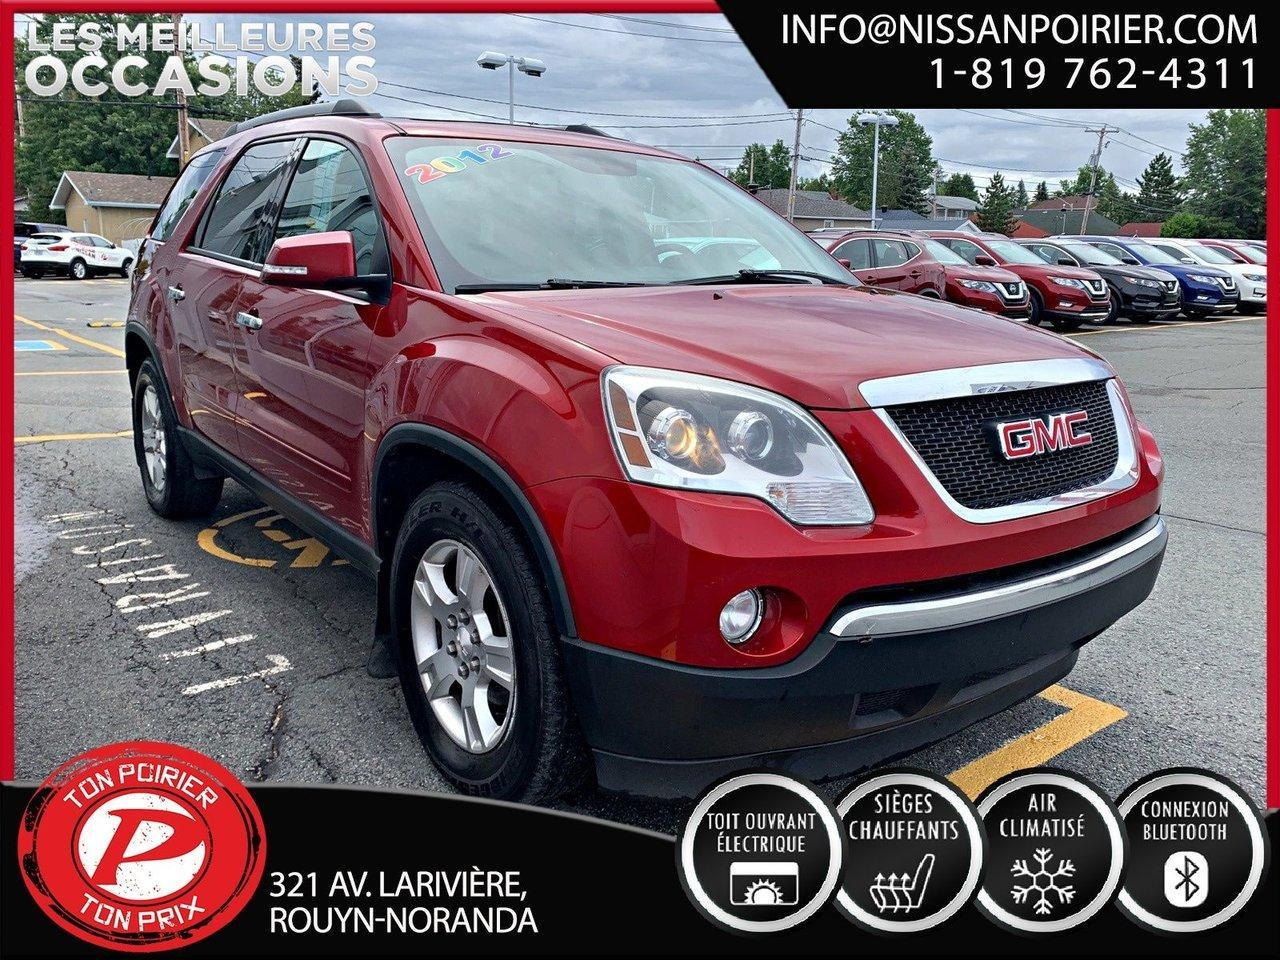 used 2012 gmc acadia sle2 for sale in rouyn-noranda, quebec carpages.ca